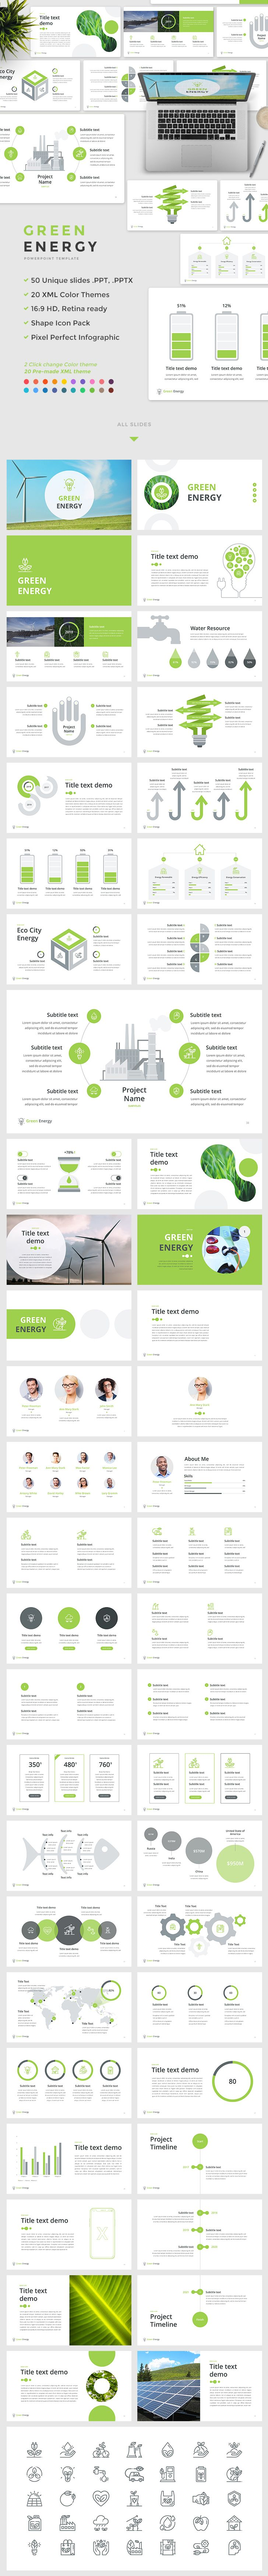 57 best powerpoint template images on pinterest ui ux animation green energy powerpoint template 50 unique slides ppt pptx 20 pre toneelgroepblik Image collections